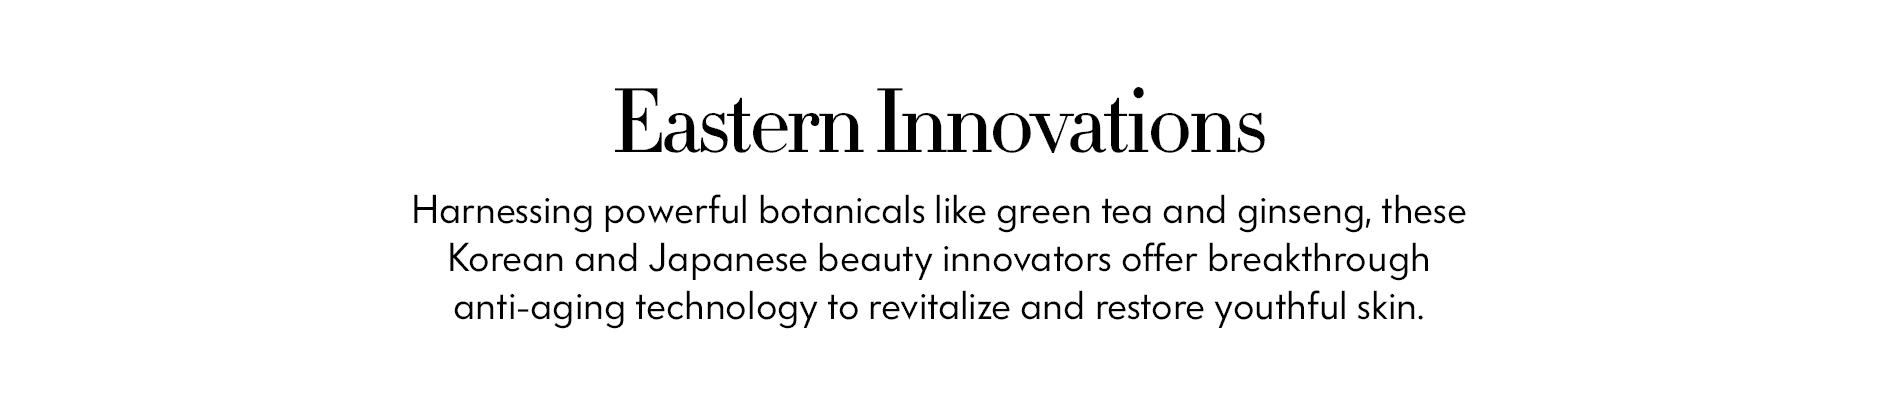 Eastern Innovations - Harnessing powerful botanicals like green tea and ginseng, these Korean and Japanese beauty innovators offer breakthrough anti-aging technology to revitalize and restore youthful skin.